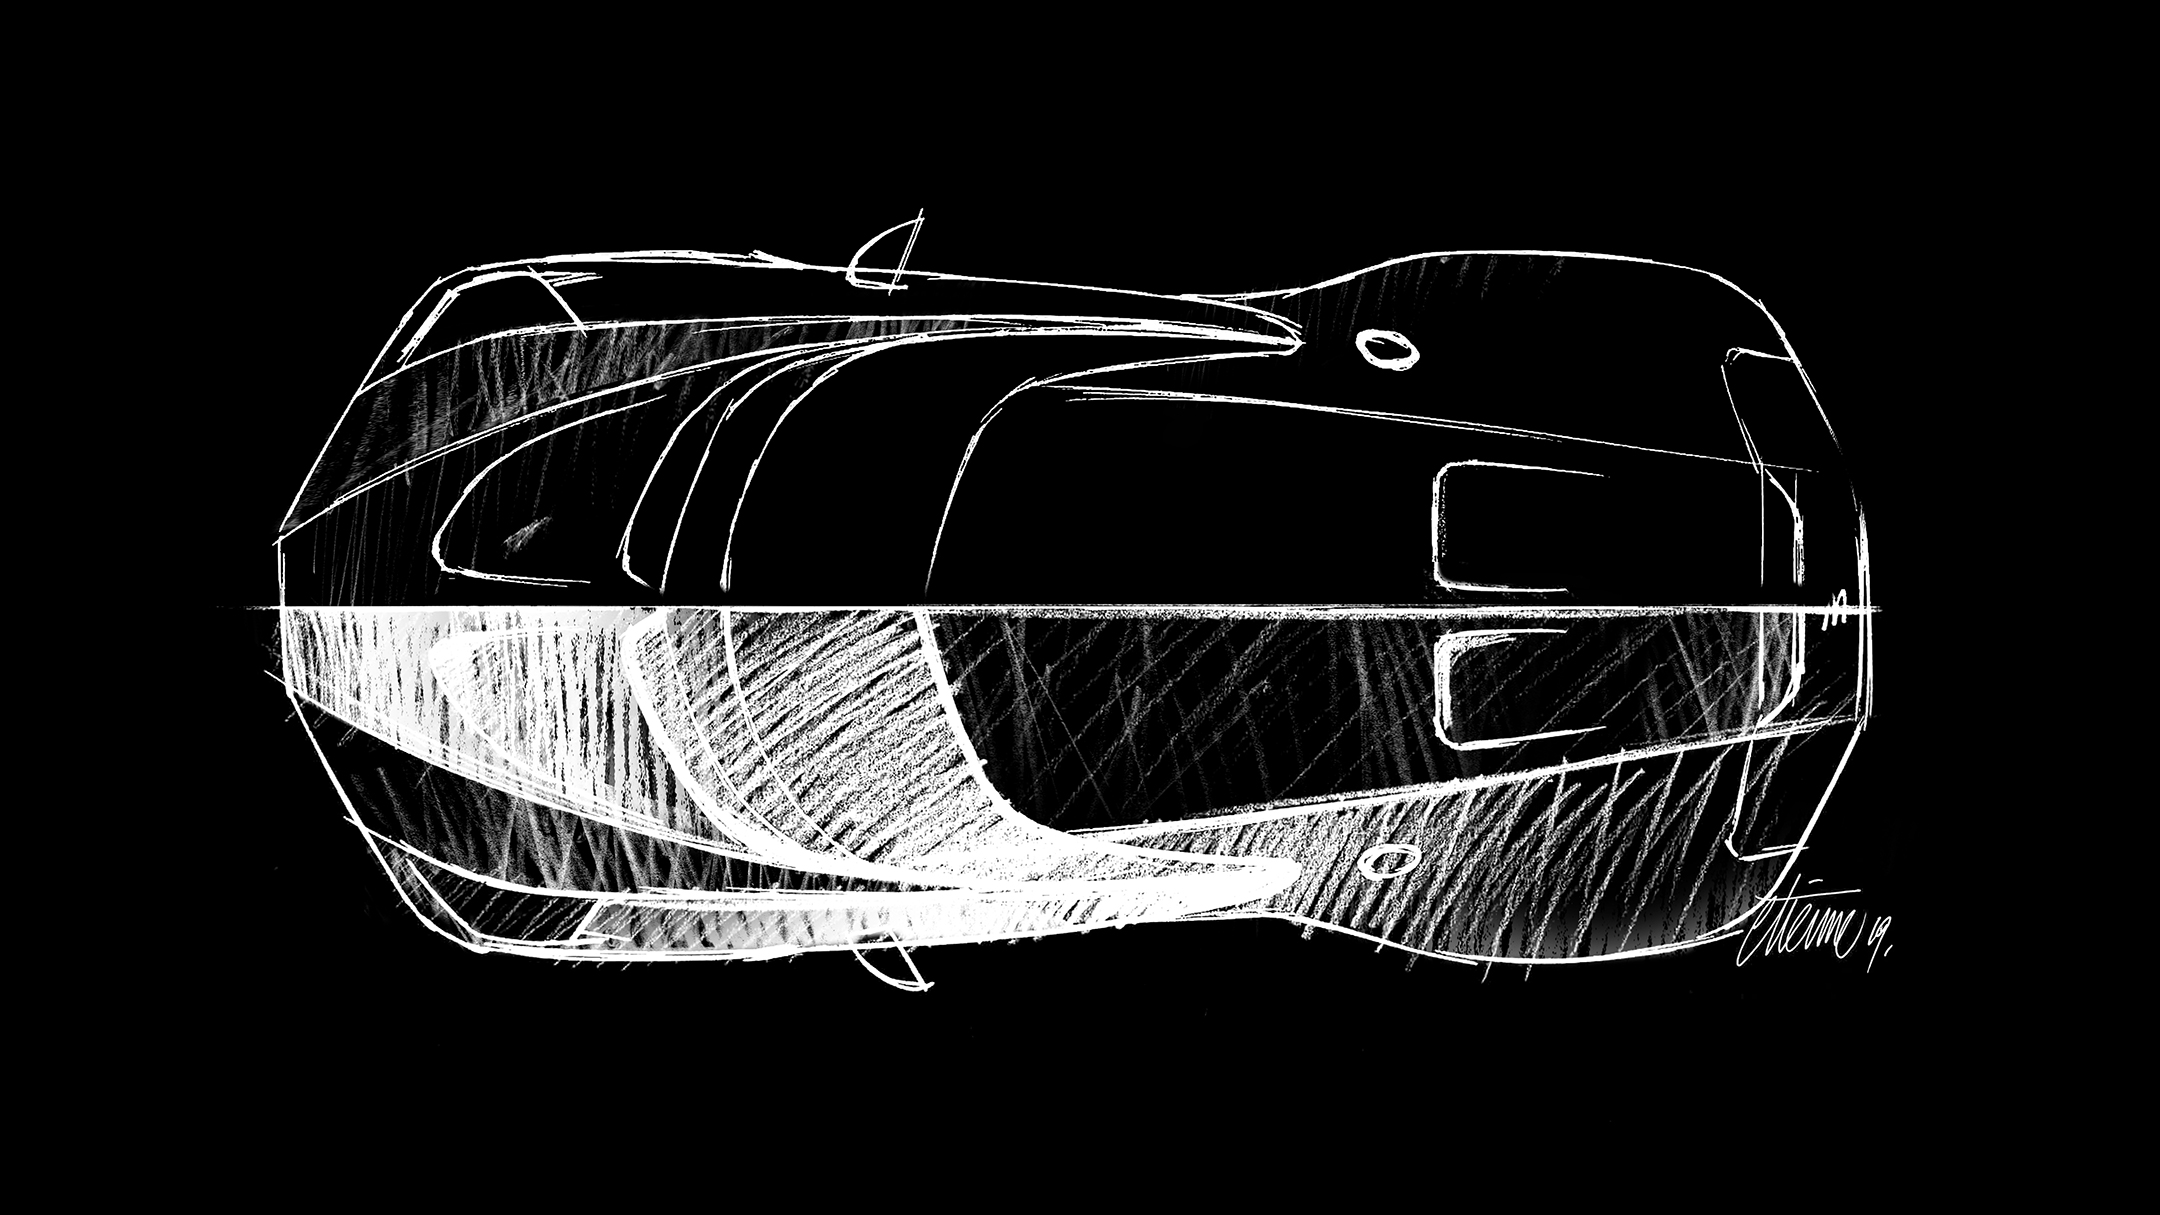 Bugatti La Voiture Noire - 2019 - sketch by ETIENNE - top view